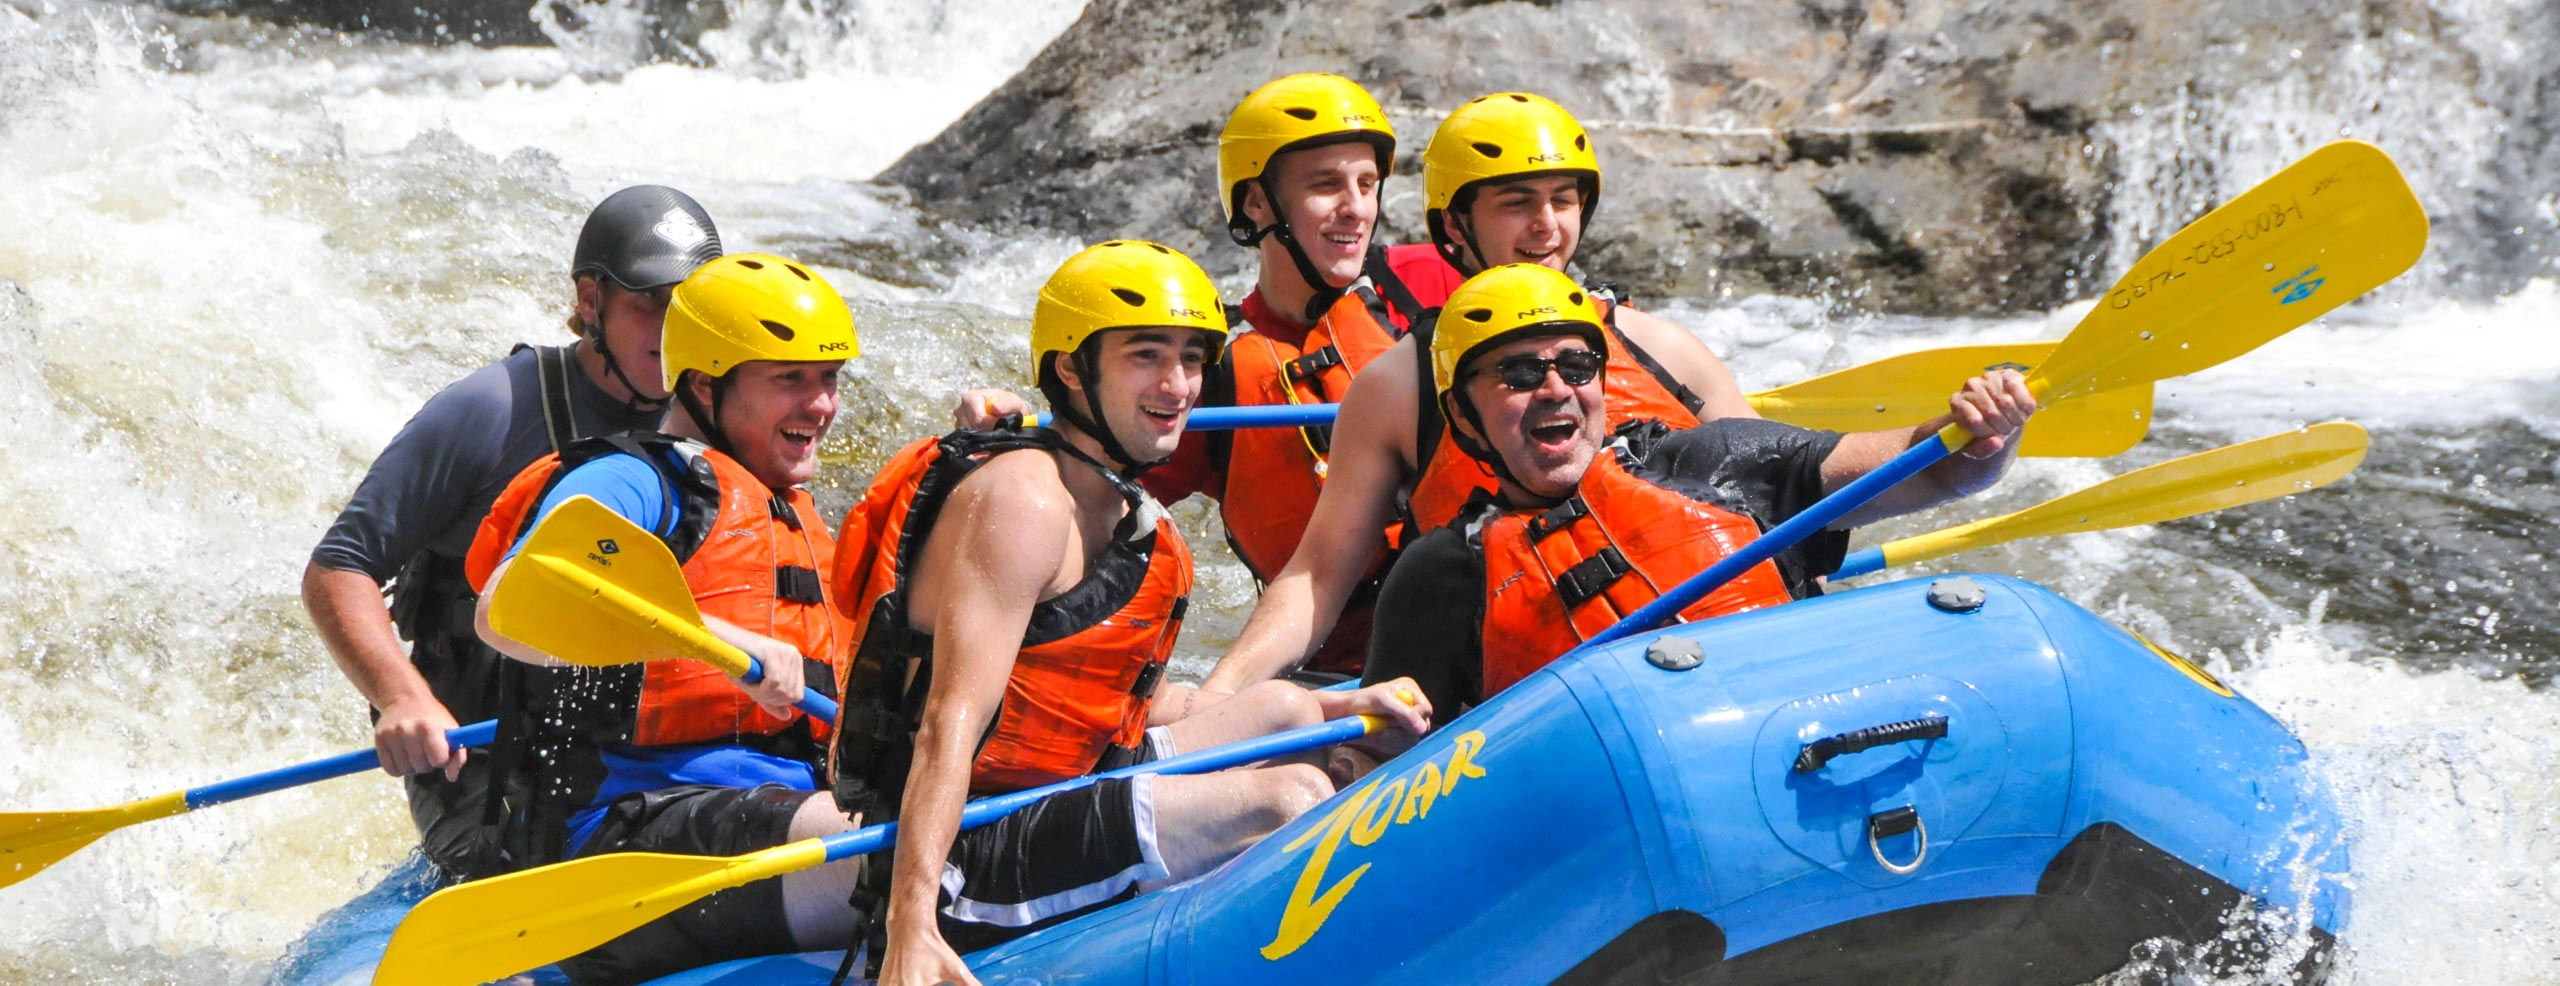 Group of guys in a raft navigating down rapids